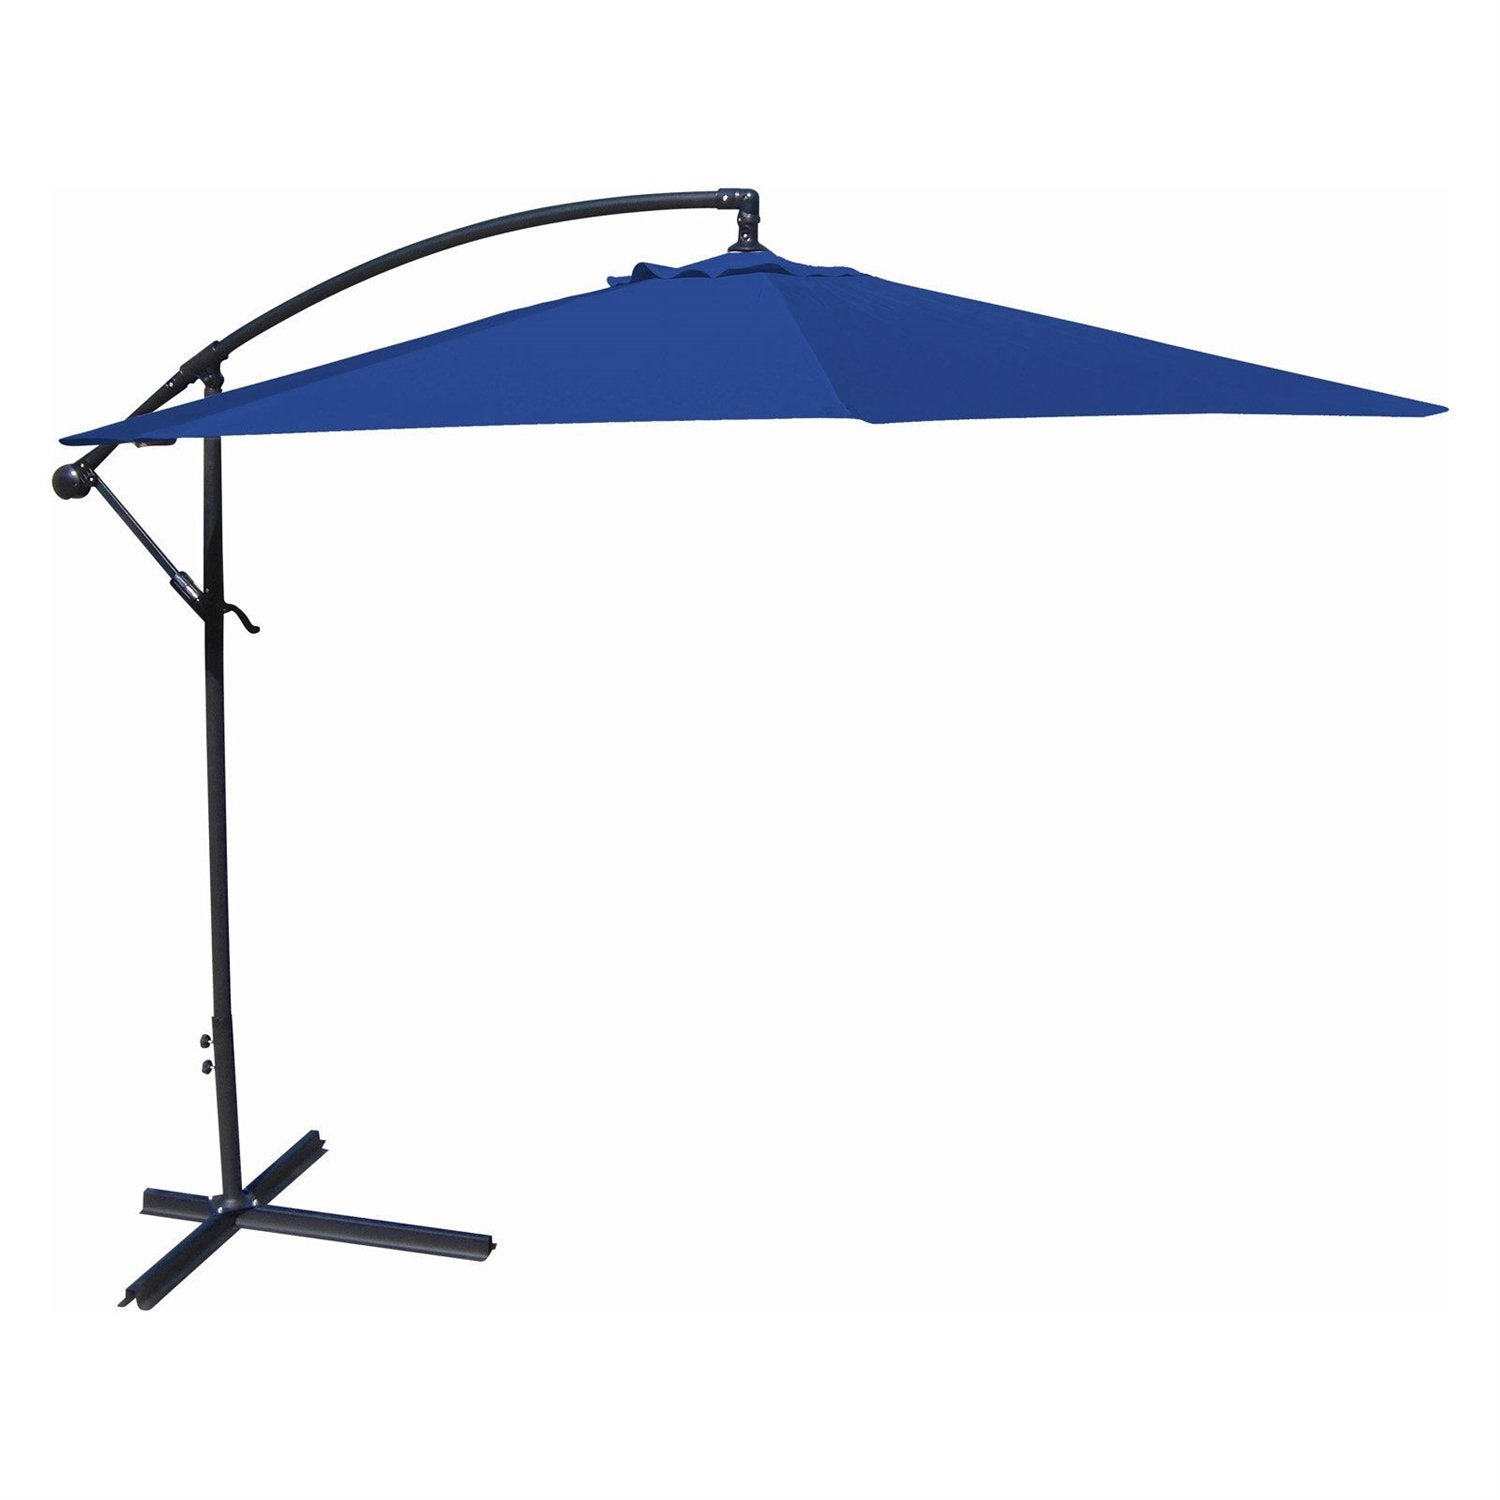 10-Ft Offset Cantilever Patio Umbrella with Royal Blue Canopy Shade